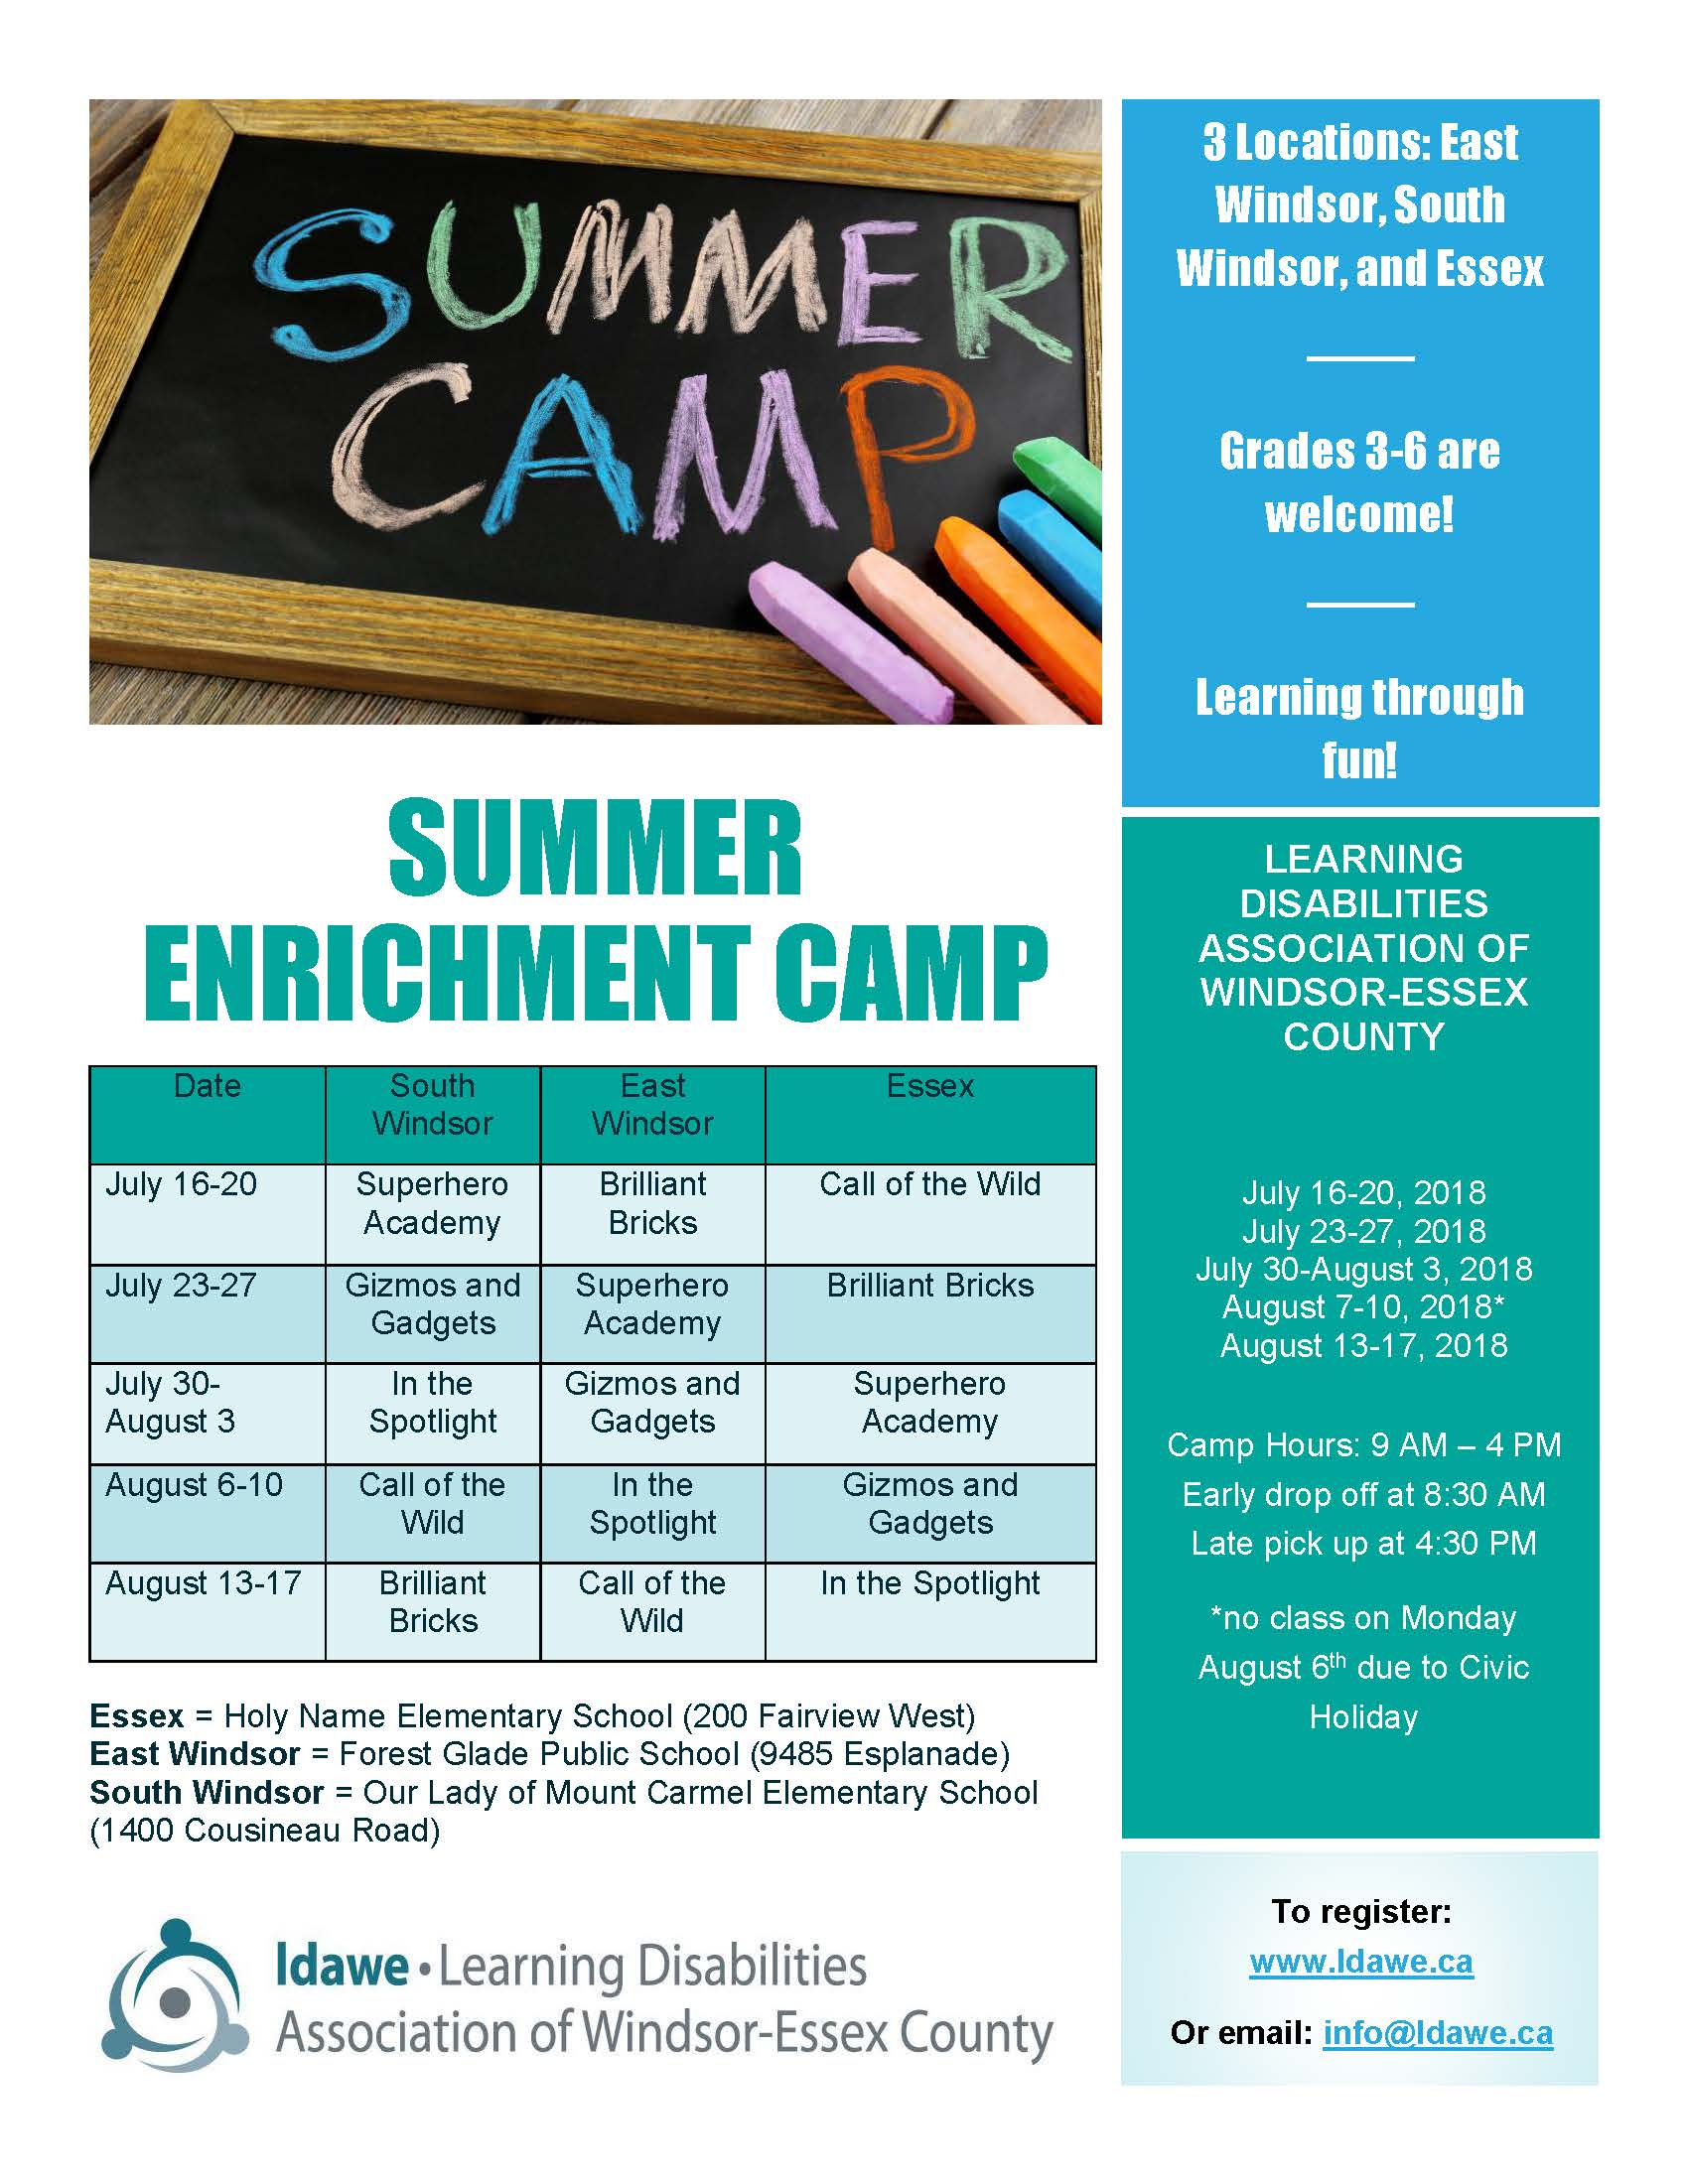 Learning Disabilities Association of Windsor-Essex - Summer Camps (3 locations in Windsor - Essex !) @ various locations in Windsor-Essex, please contact LDAWE